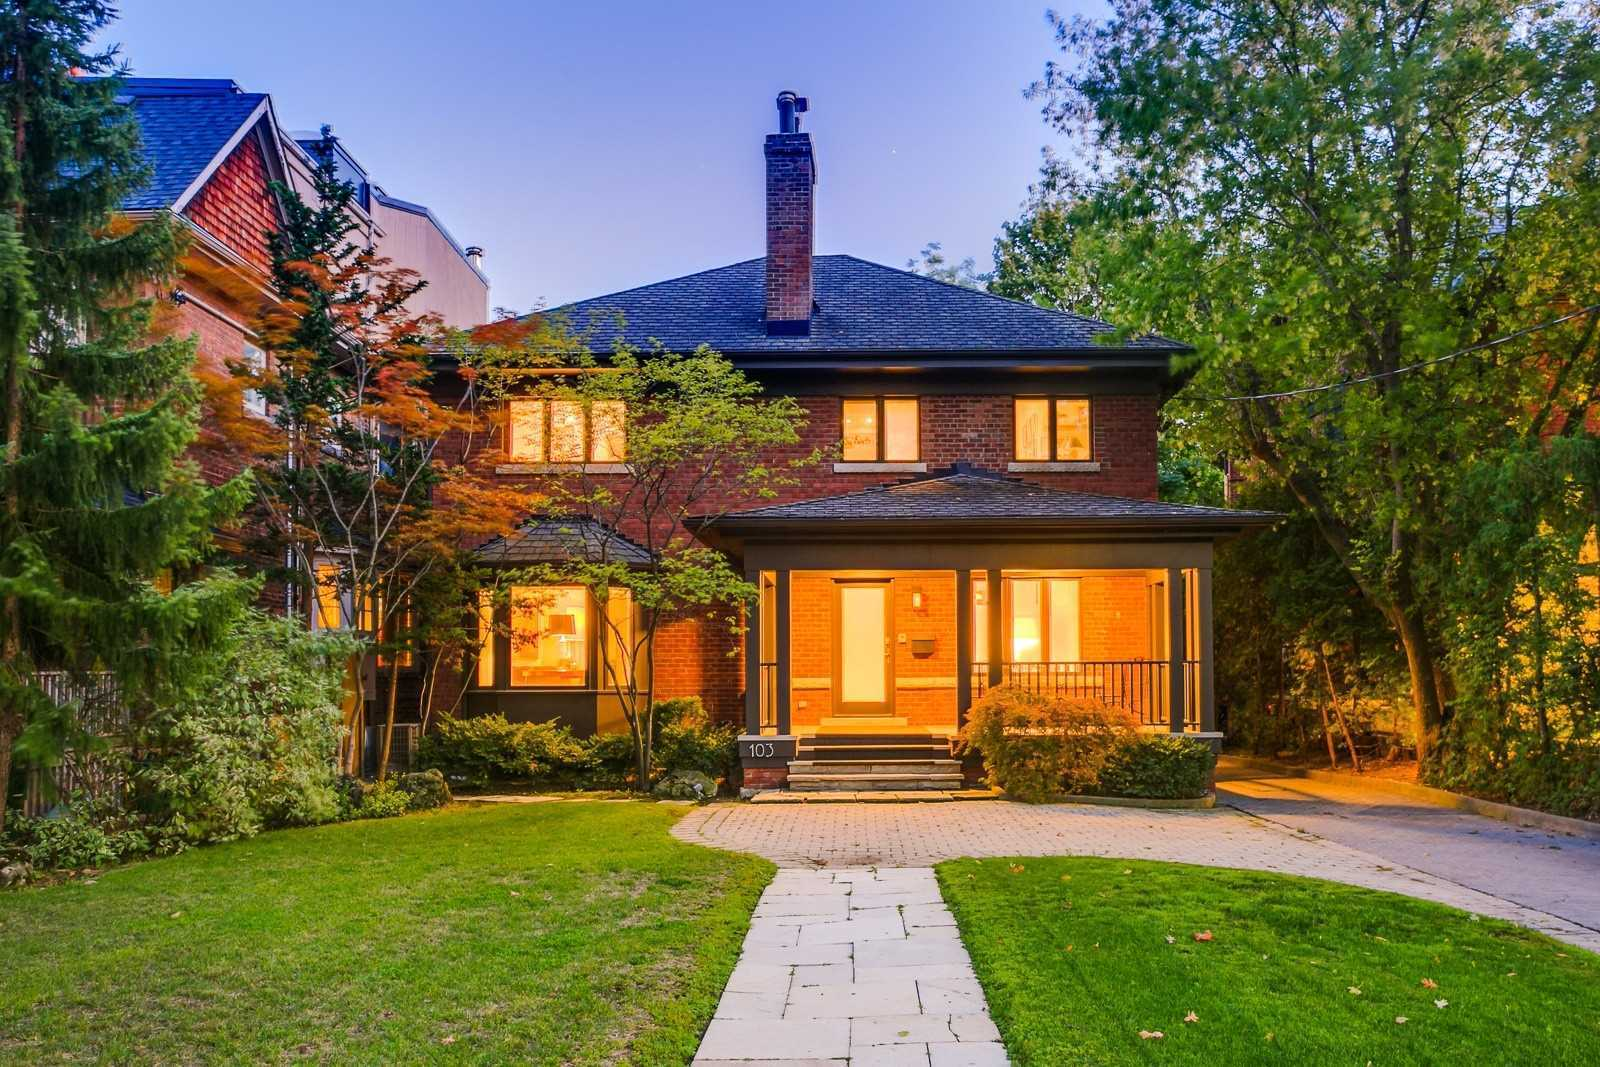 103 Woodlawn Ave, Toronto, Ontario M4V1G6, 3 Bedrooms Bedrooms, 6 Rooms Rooms,4 BathroomsBathrooms,Detached,For Sale,Woodlawn,C4922138